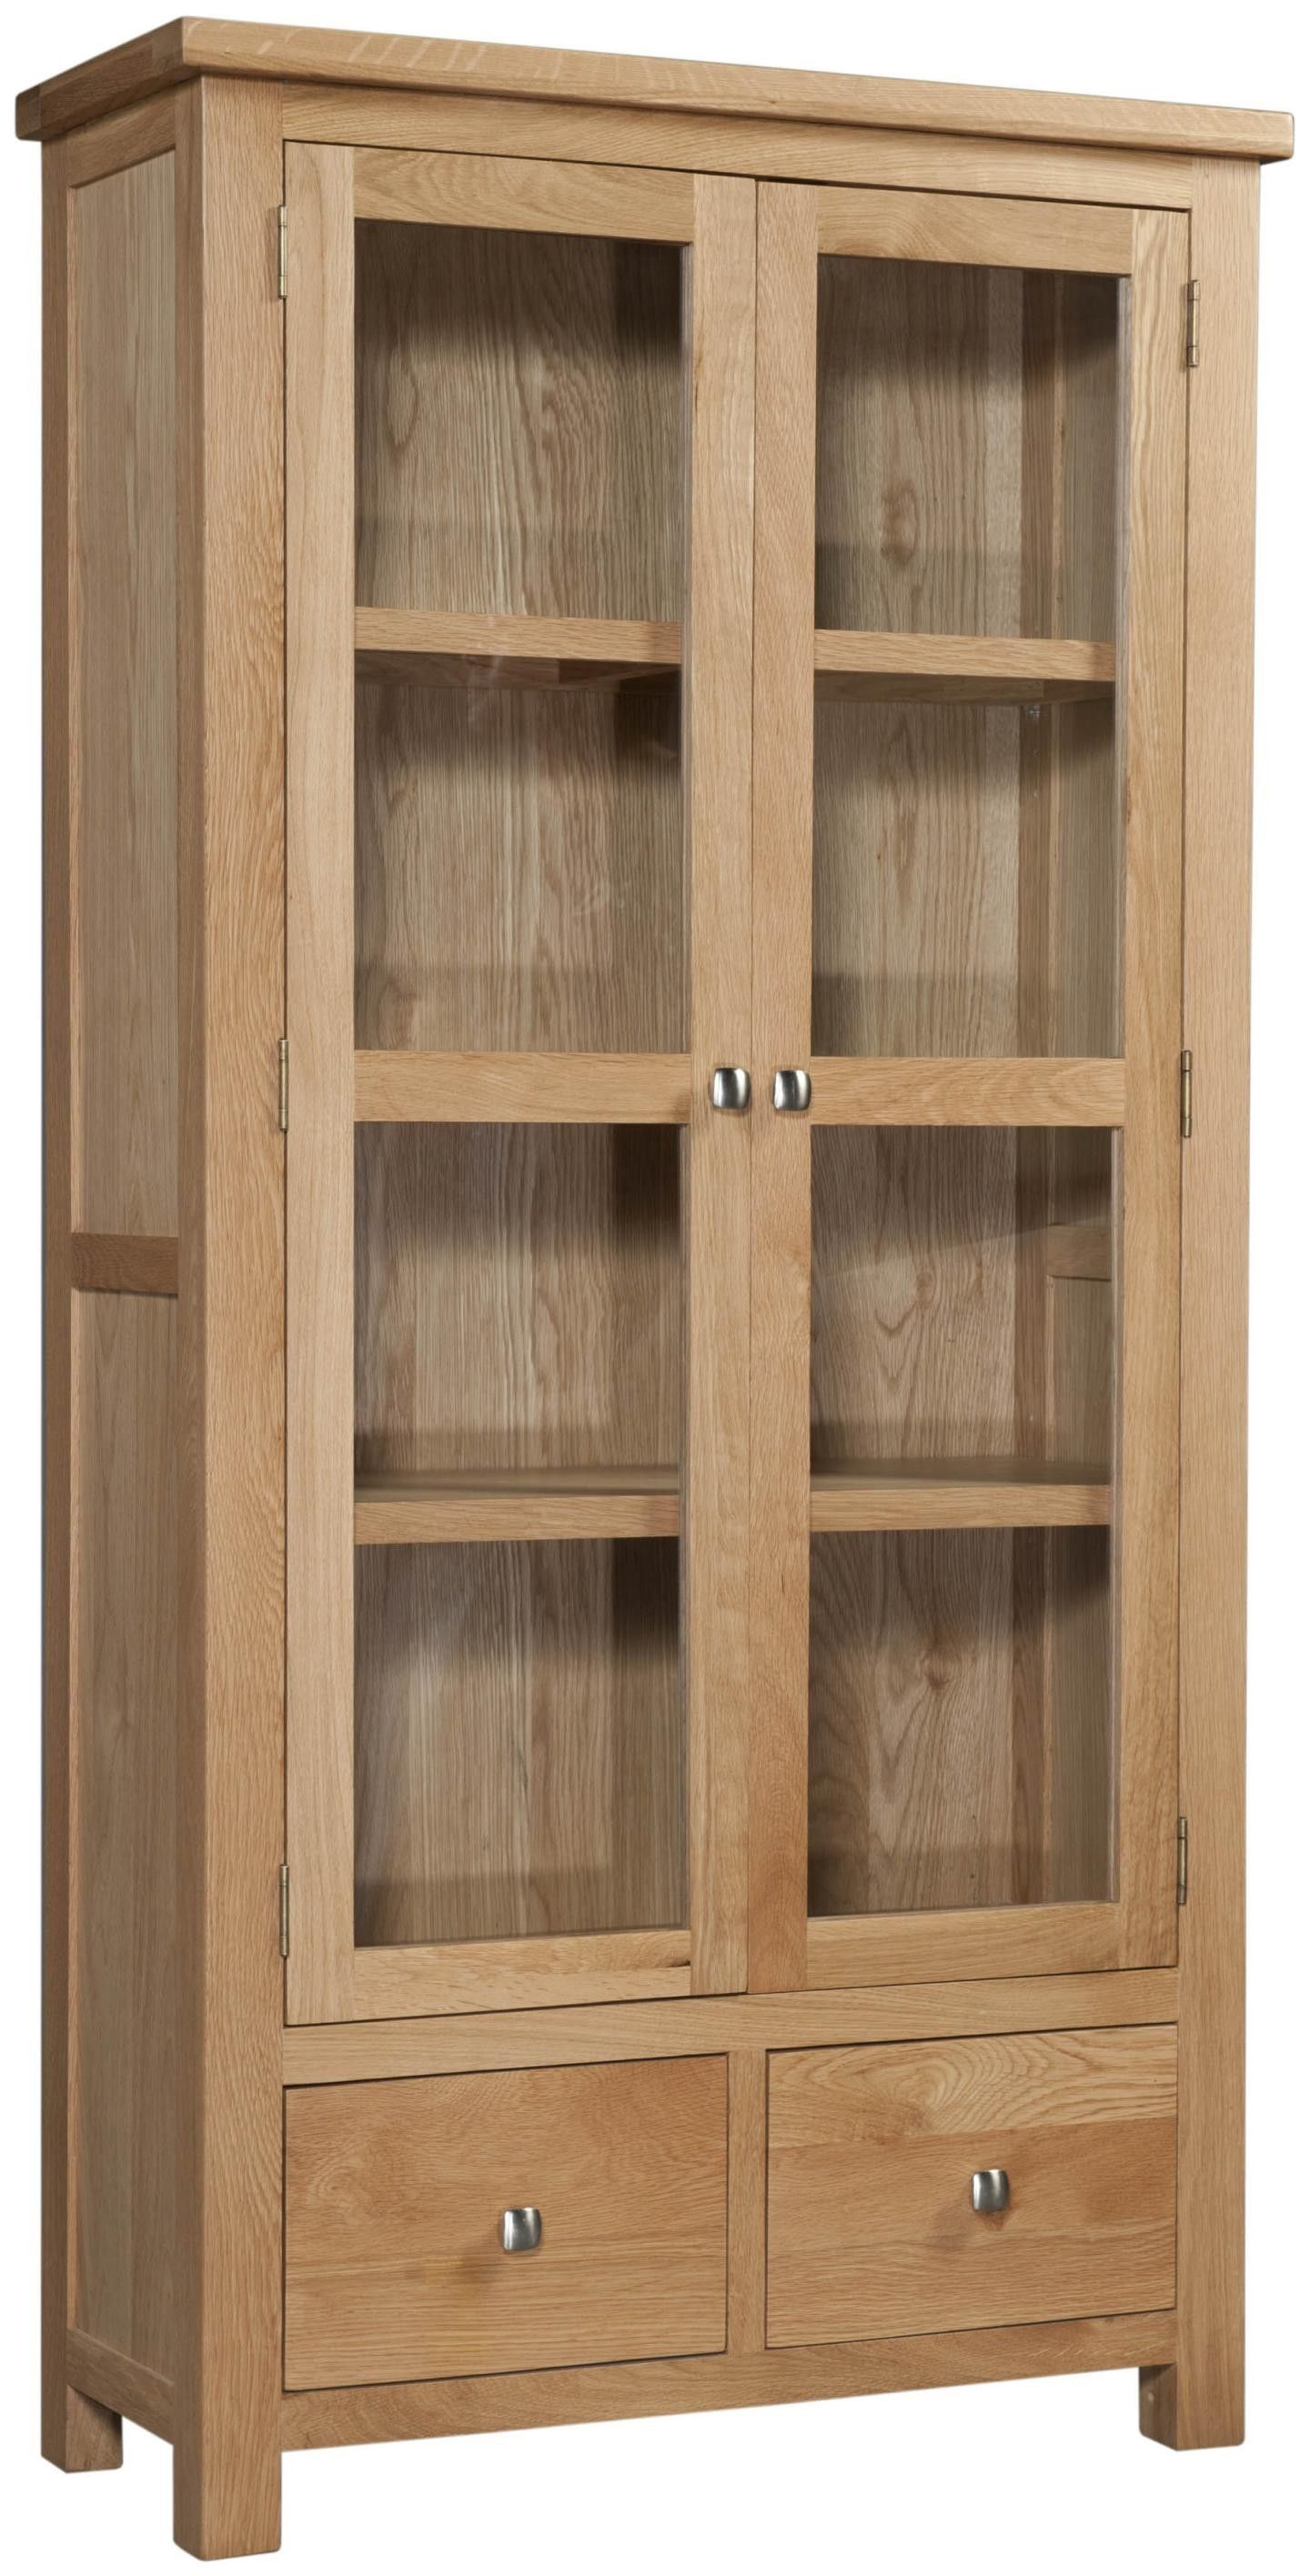 Oak Wall Display Cabinets With Glass Doors Httpbetdaffaires